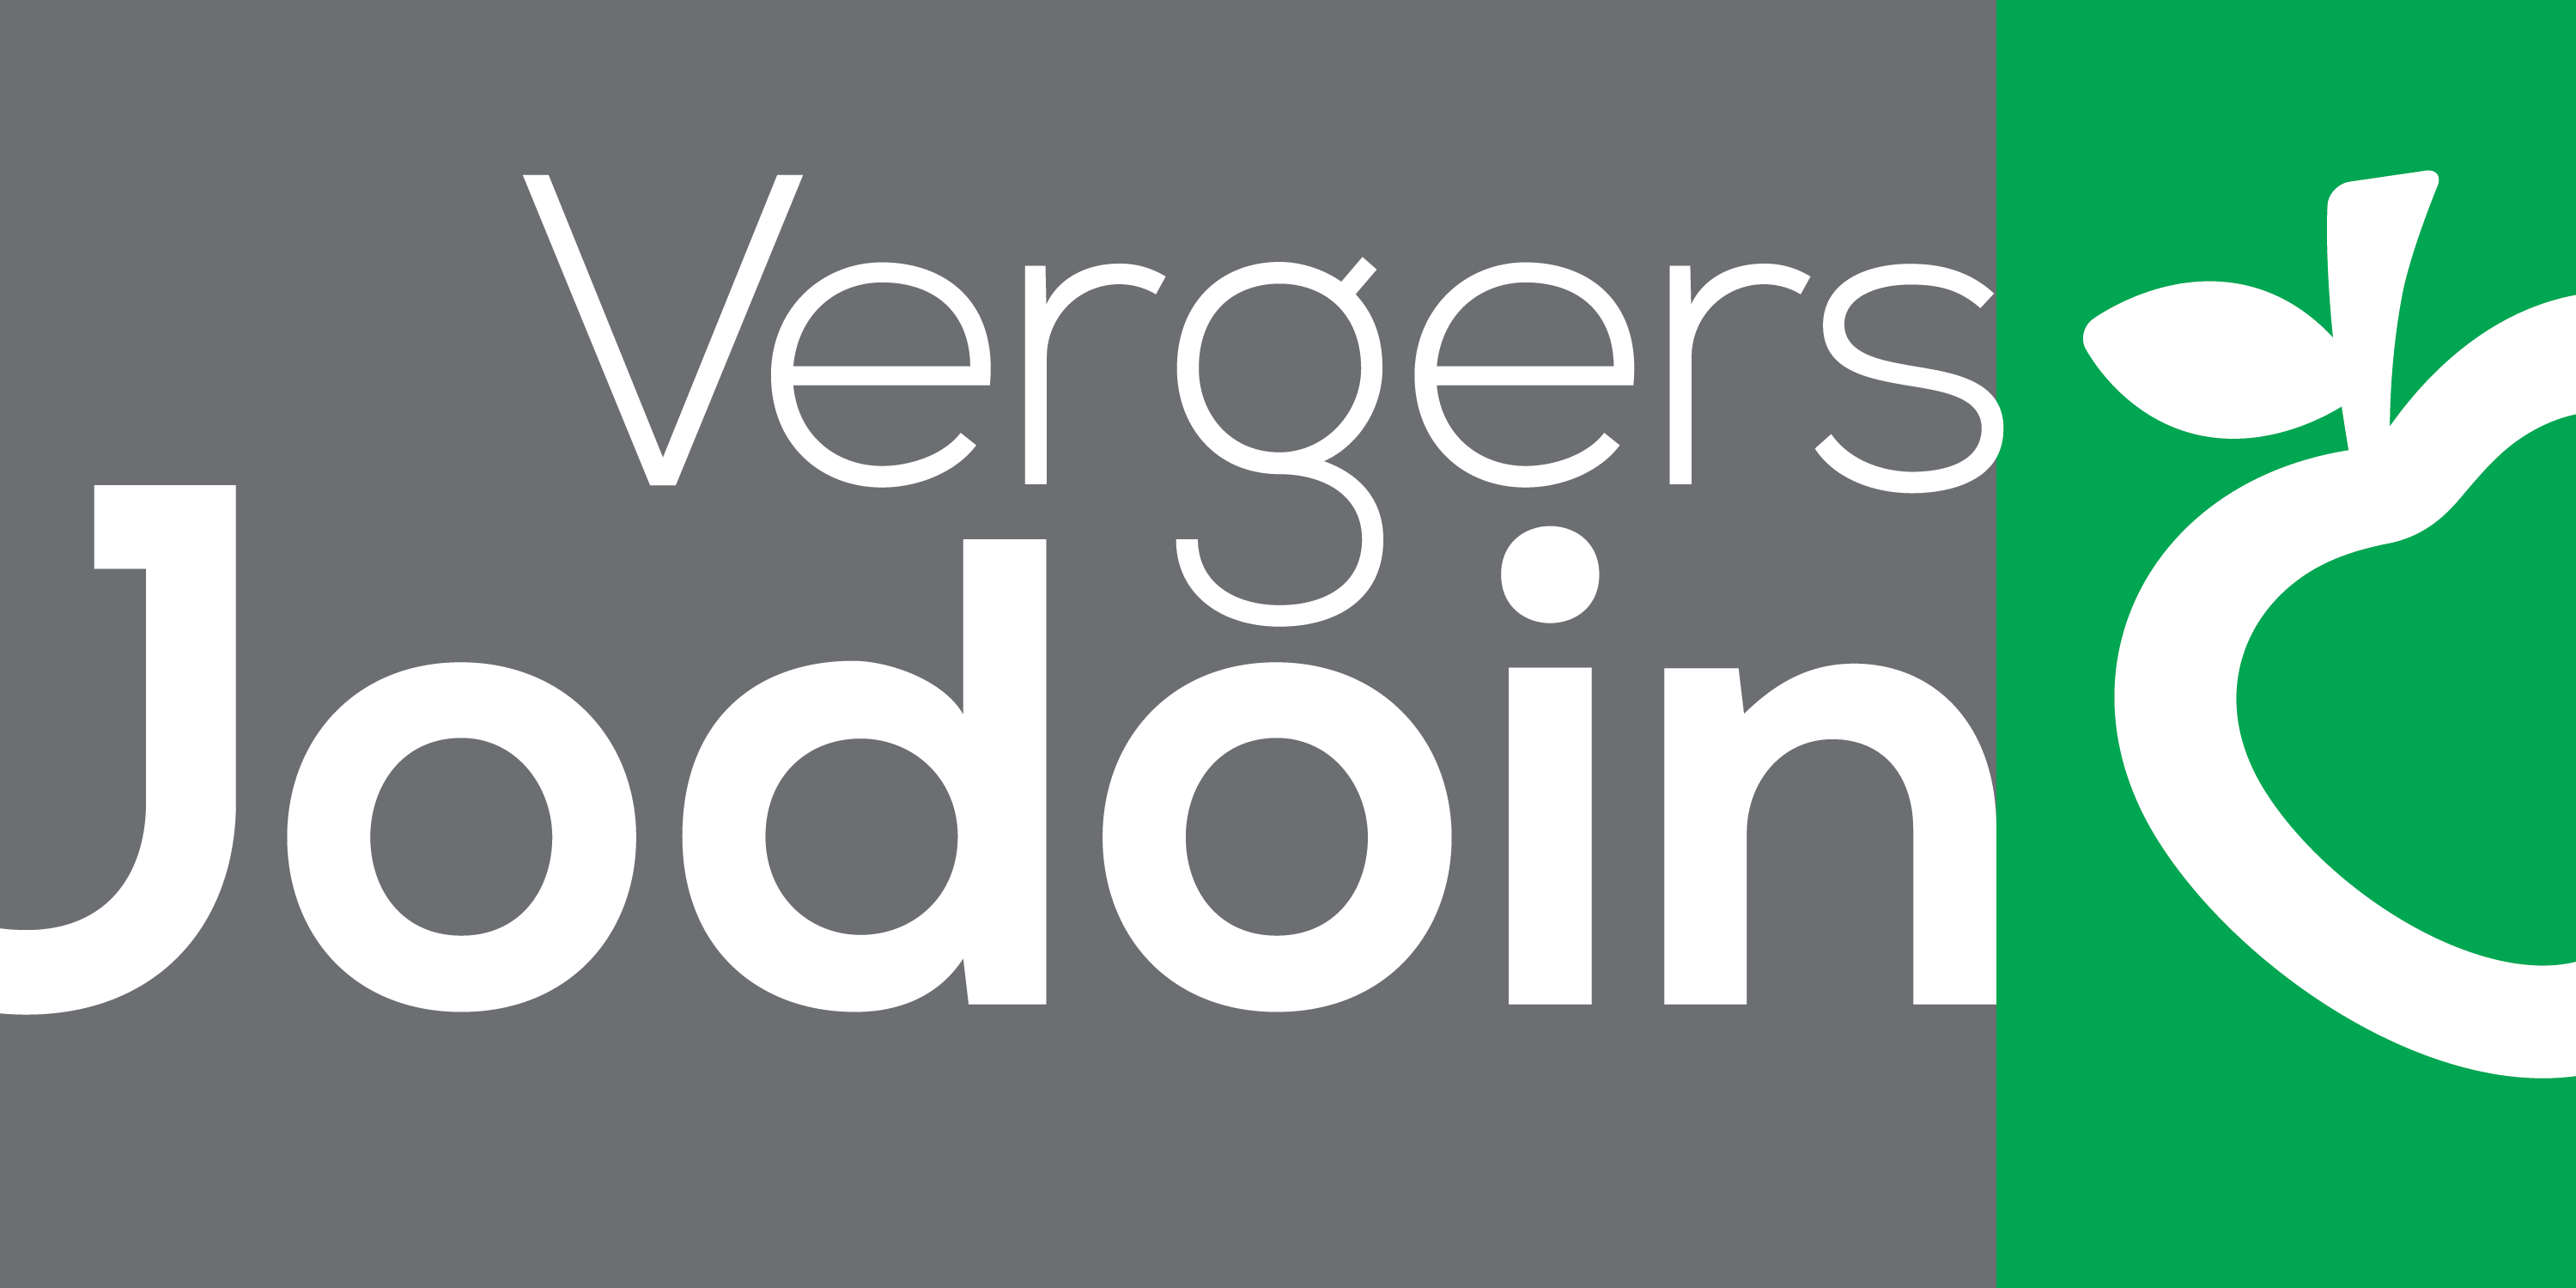 Vergers Paul Jodoin inc.